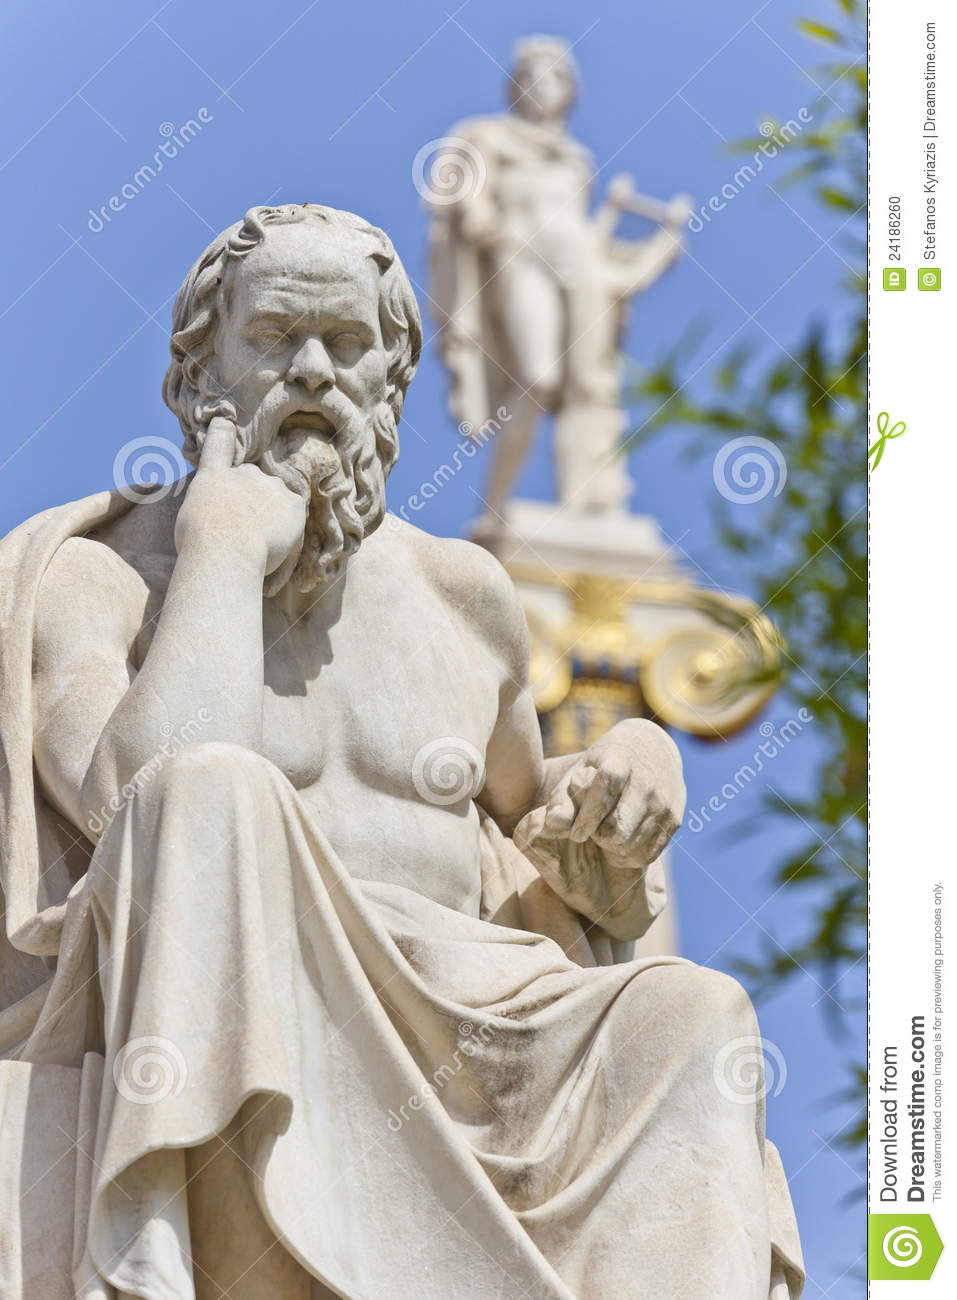 ancient greece and important contribution socrates When we think of ancient greece devastated by socrates' death, he wandered around greece and the mediterranean and was taken by pirates his friends raised money to ransom him from slavery, but when he was released without it.